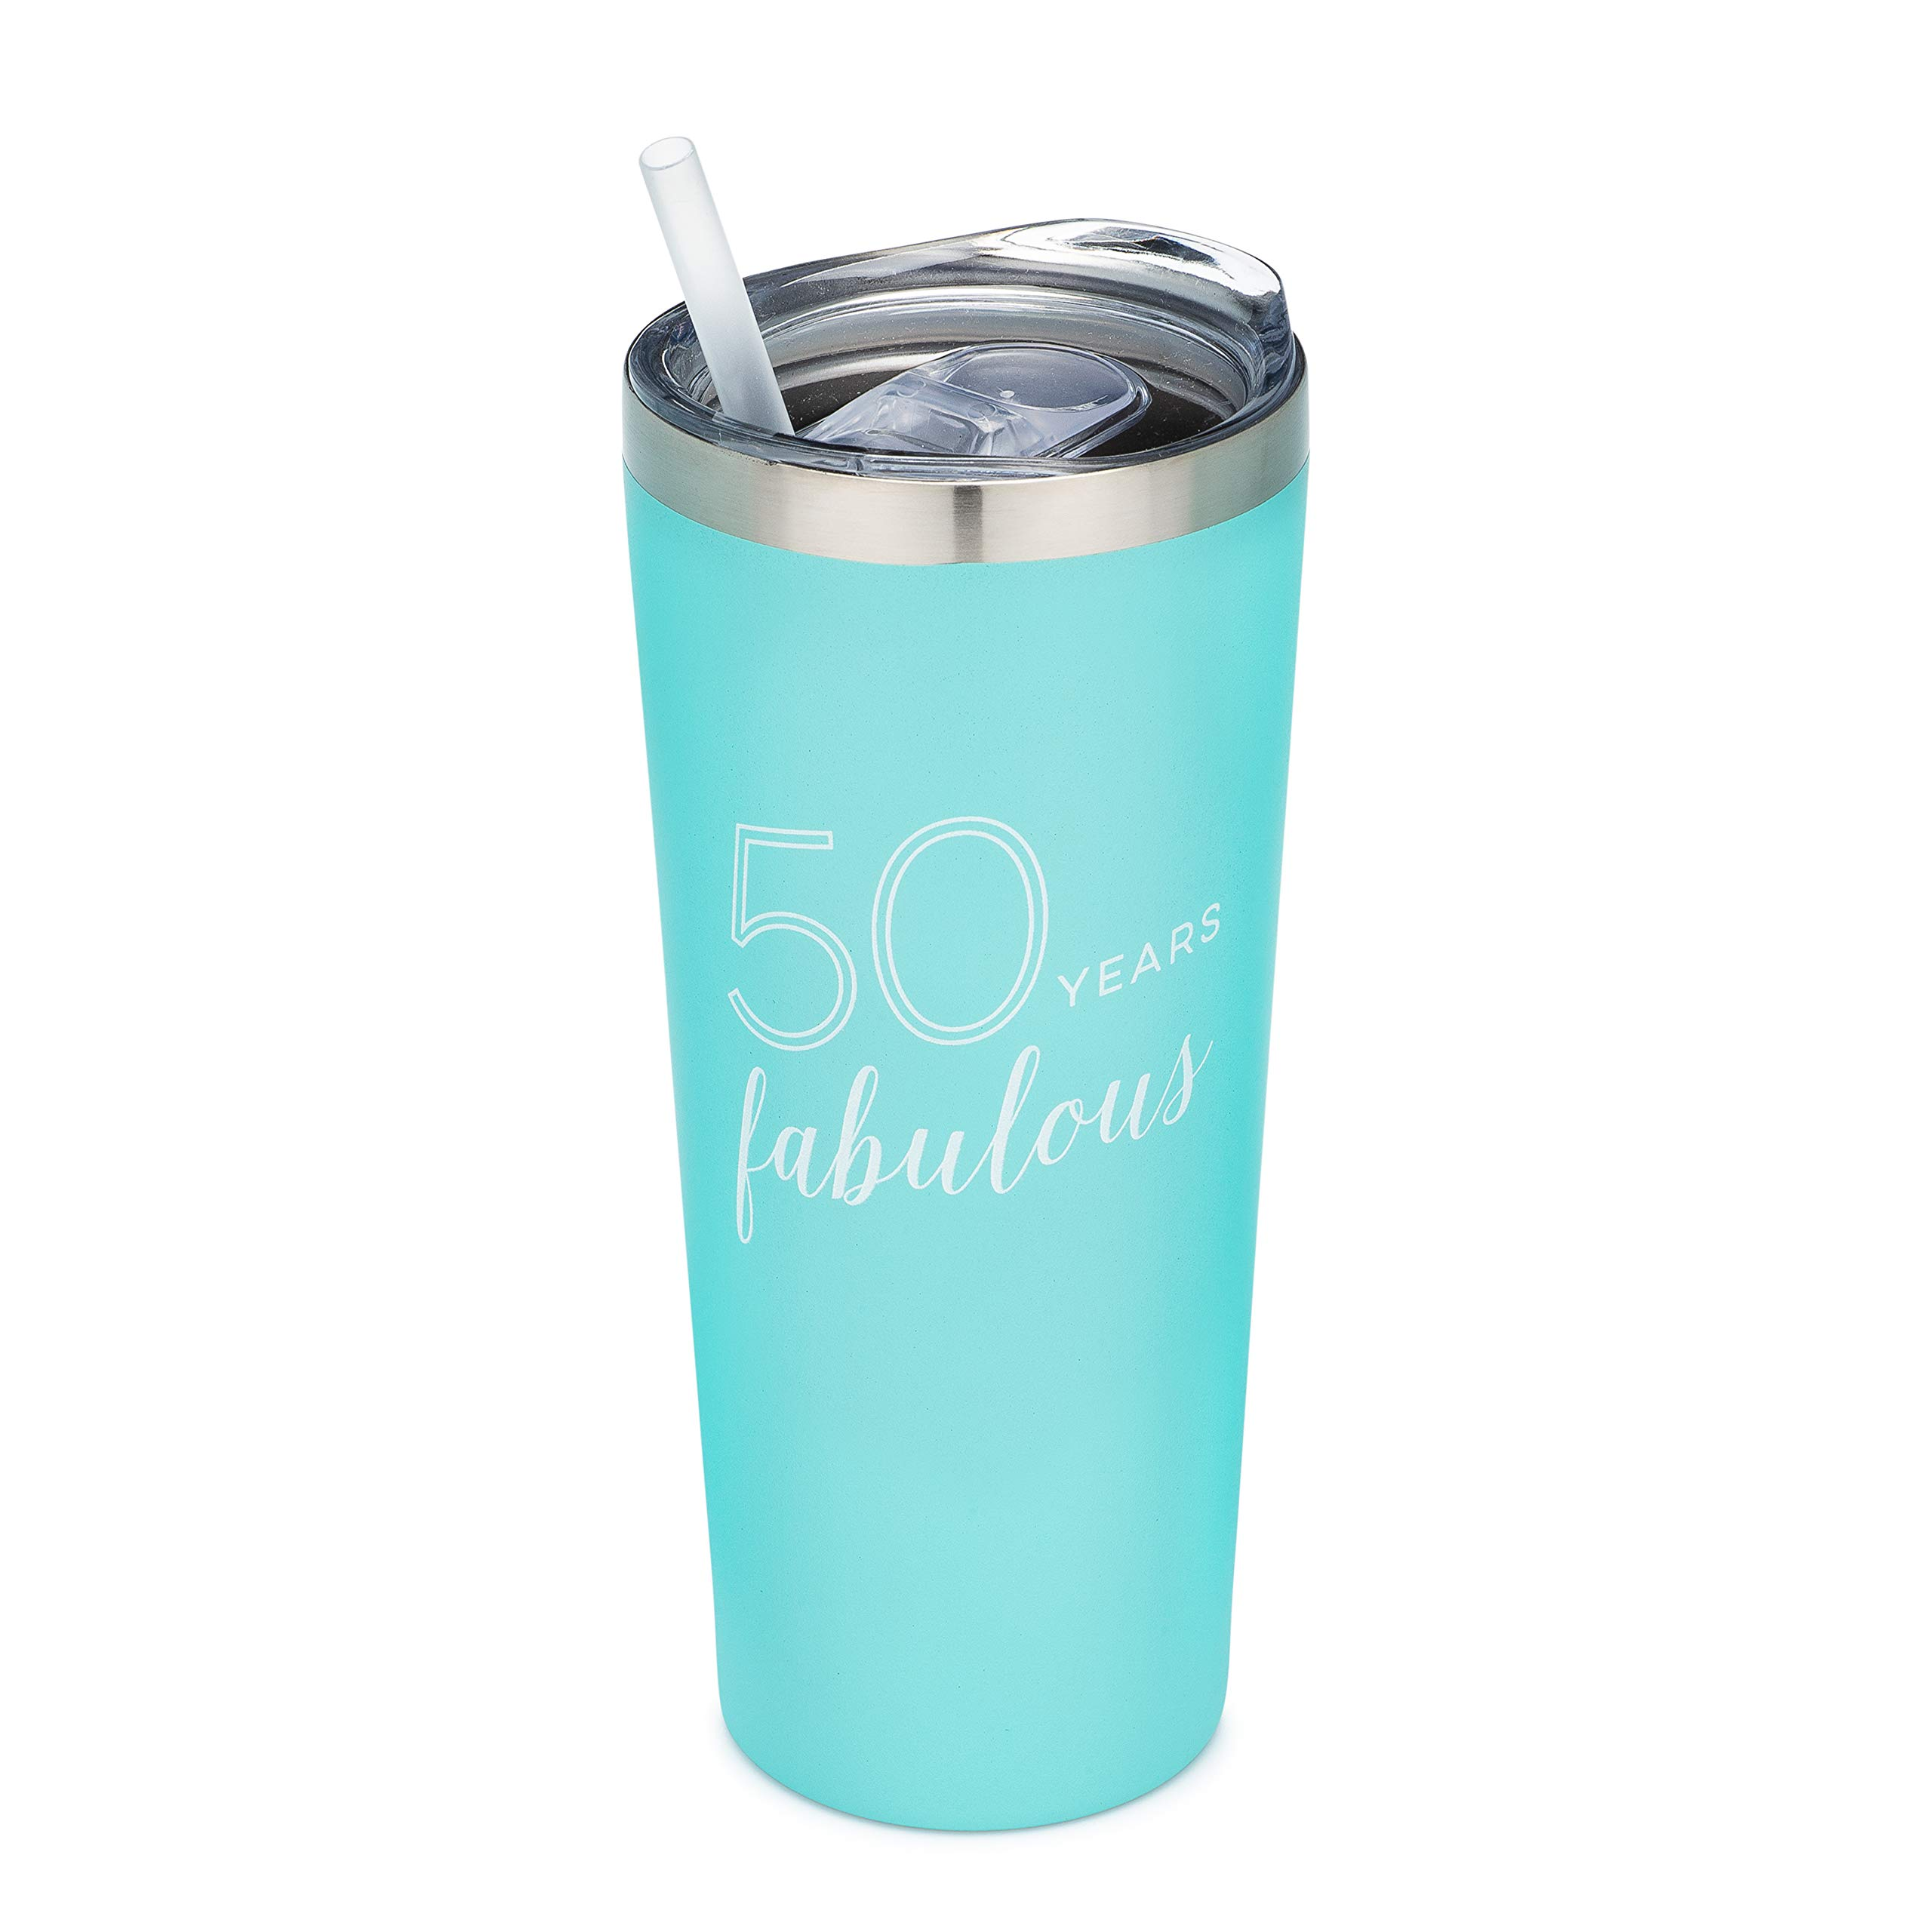 50 Years Fabulous | 22 oz MINT Insulated Tumbler with Lid and Straw - 50th Birthday Gift for Her | Friend | Coworker | Sister | Sister in Law | Mom | Mother in Law